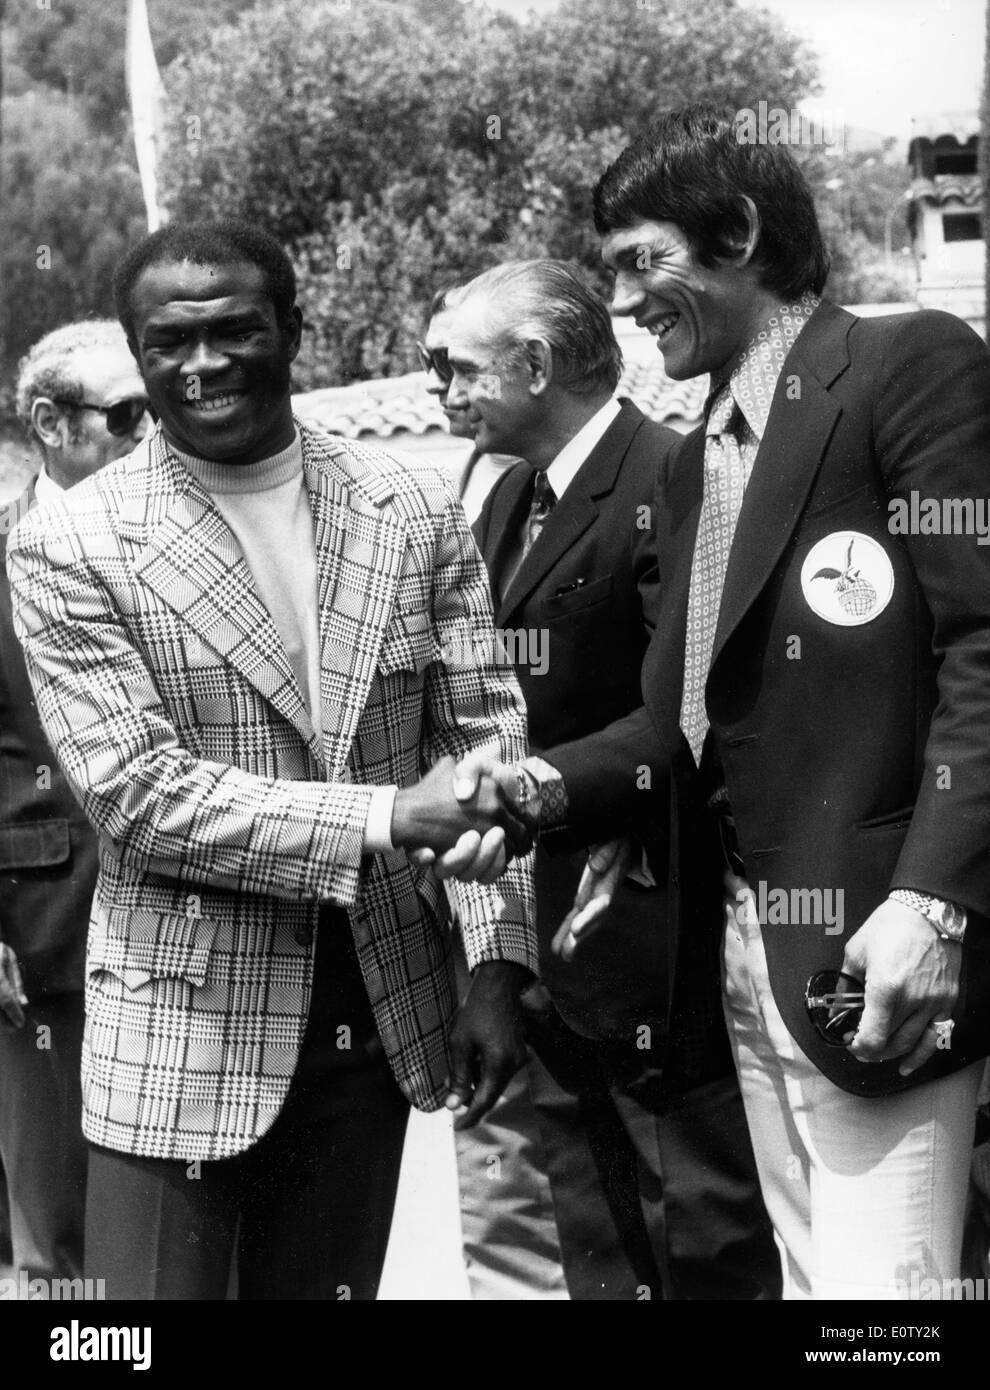 Boxer Emile Griffith shaking hands with another man - Stock Image